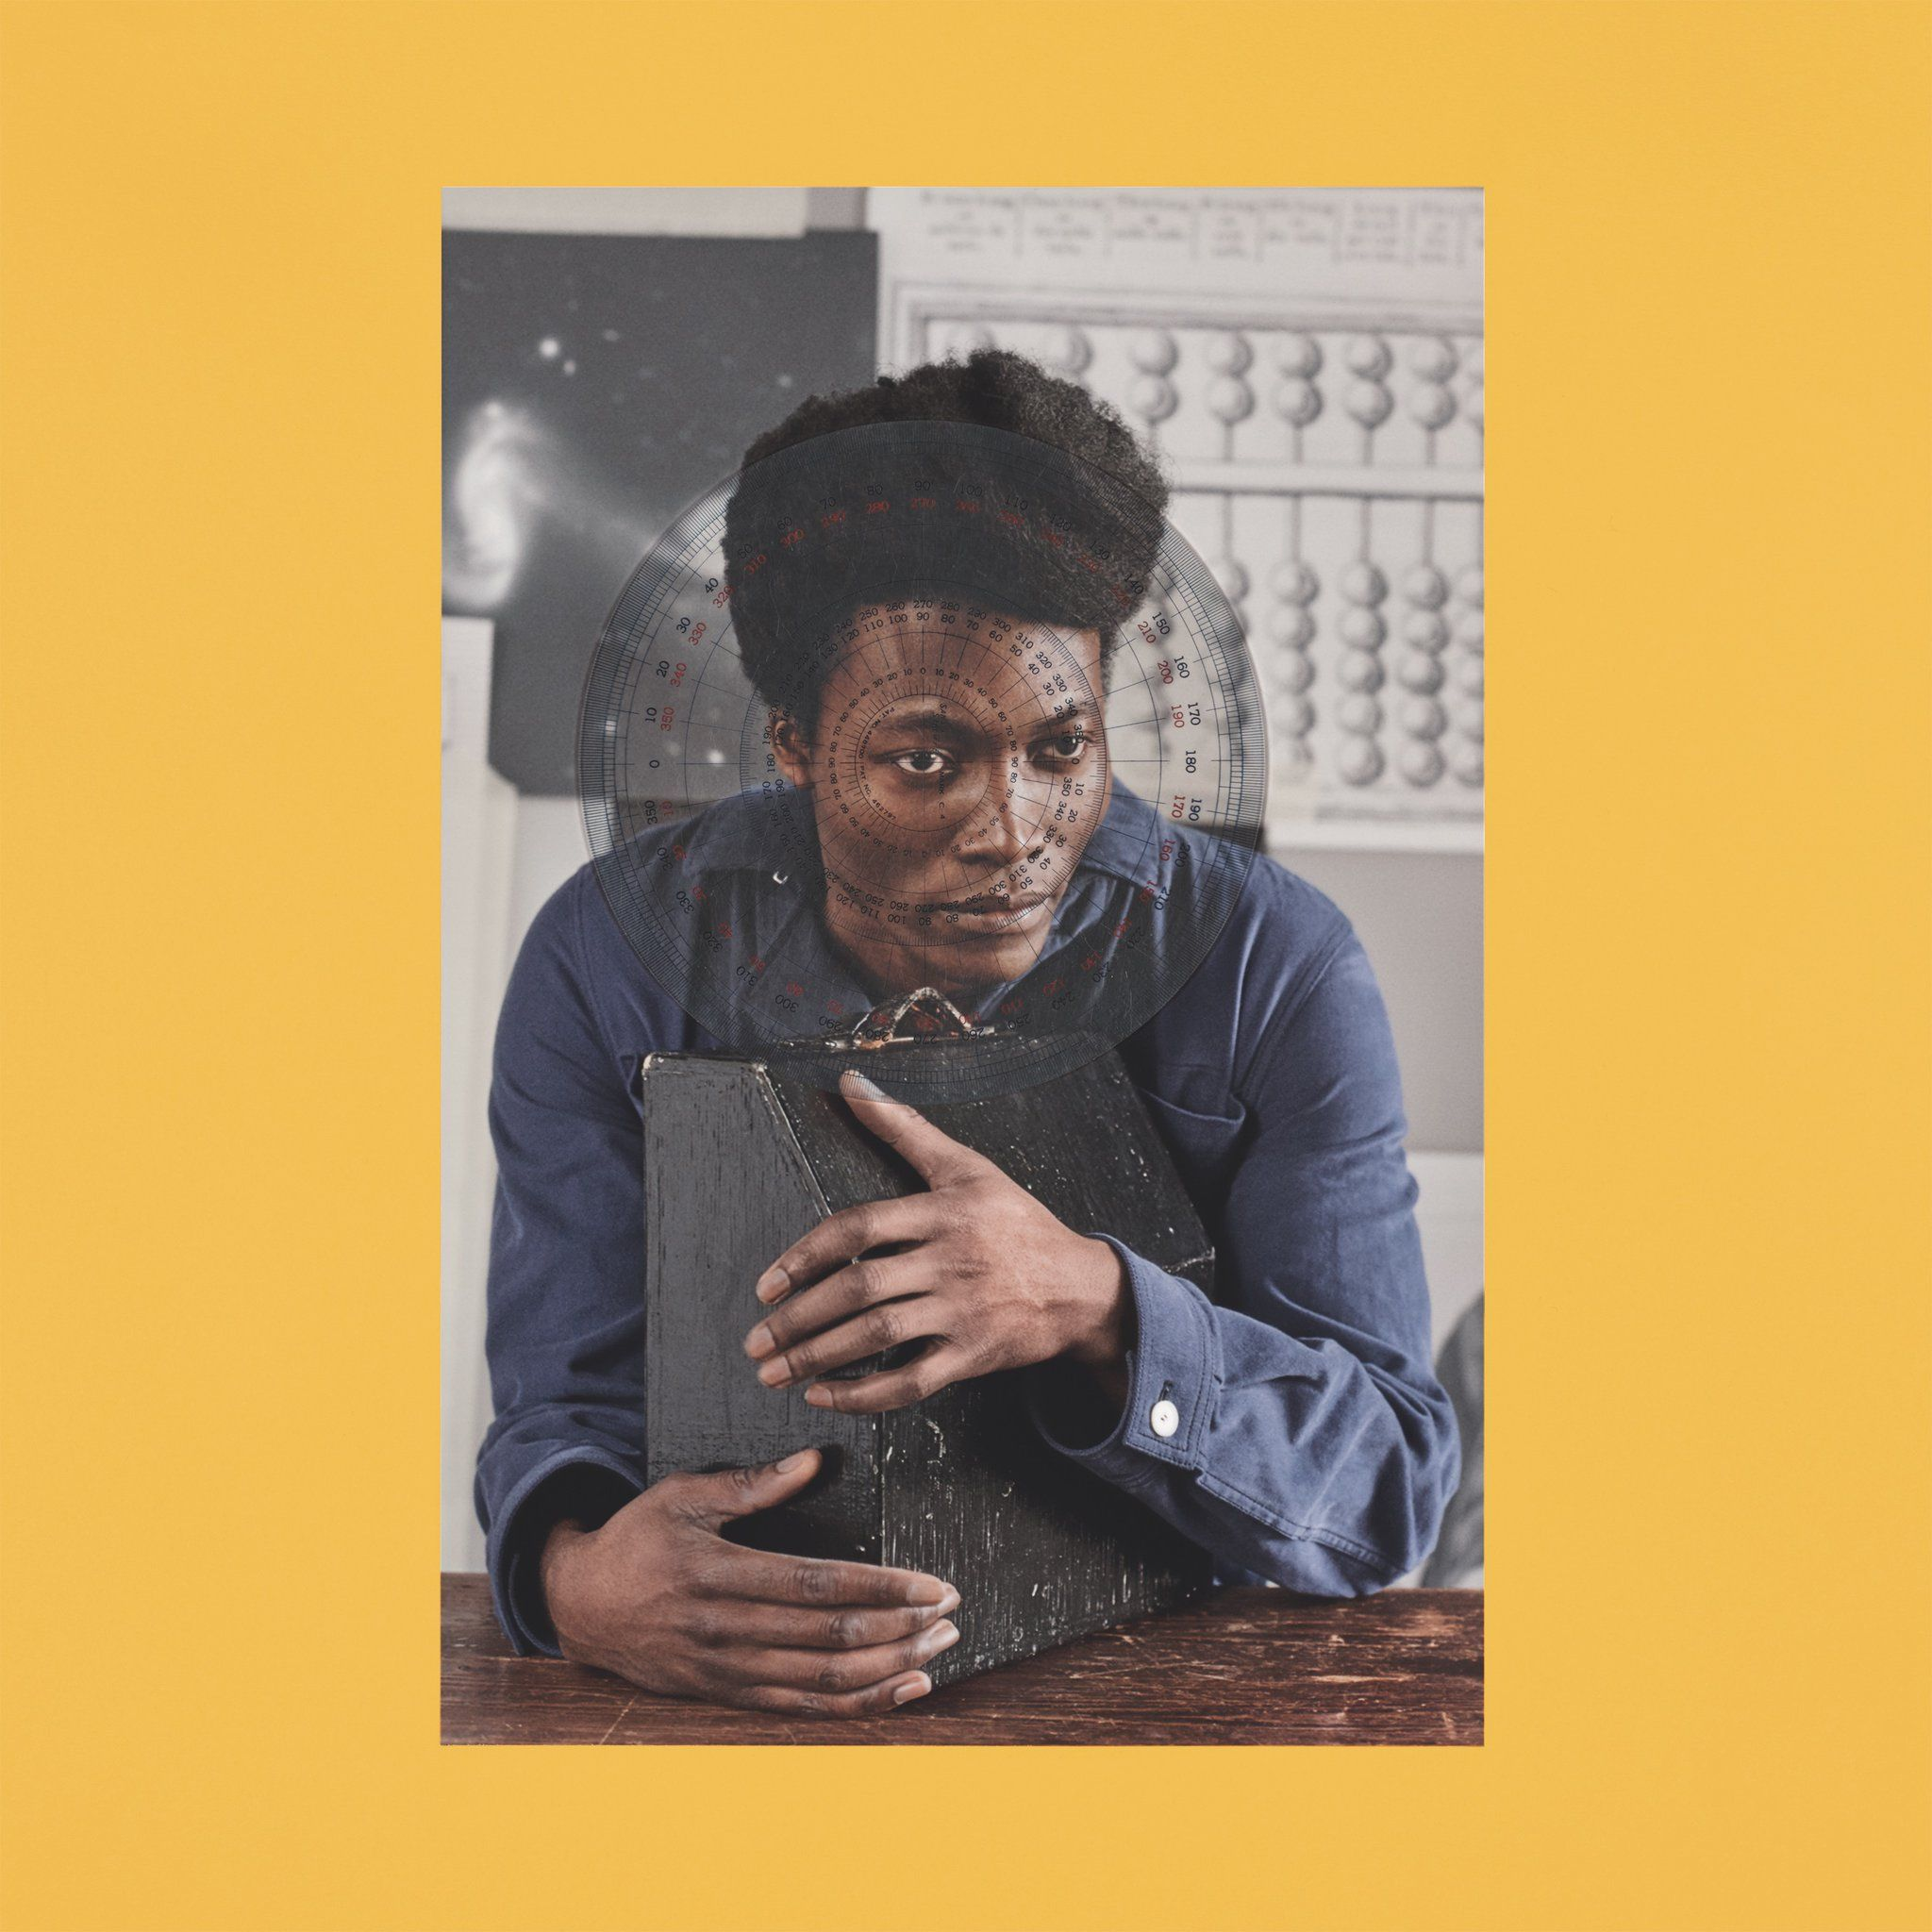 Benjamin Clementine - I Tell A Fly album cover